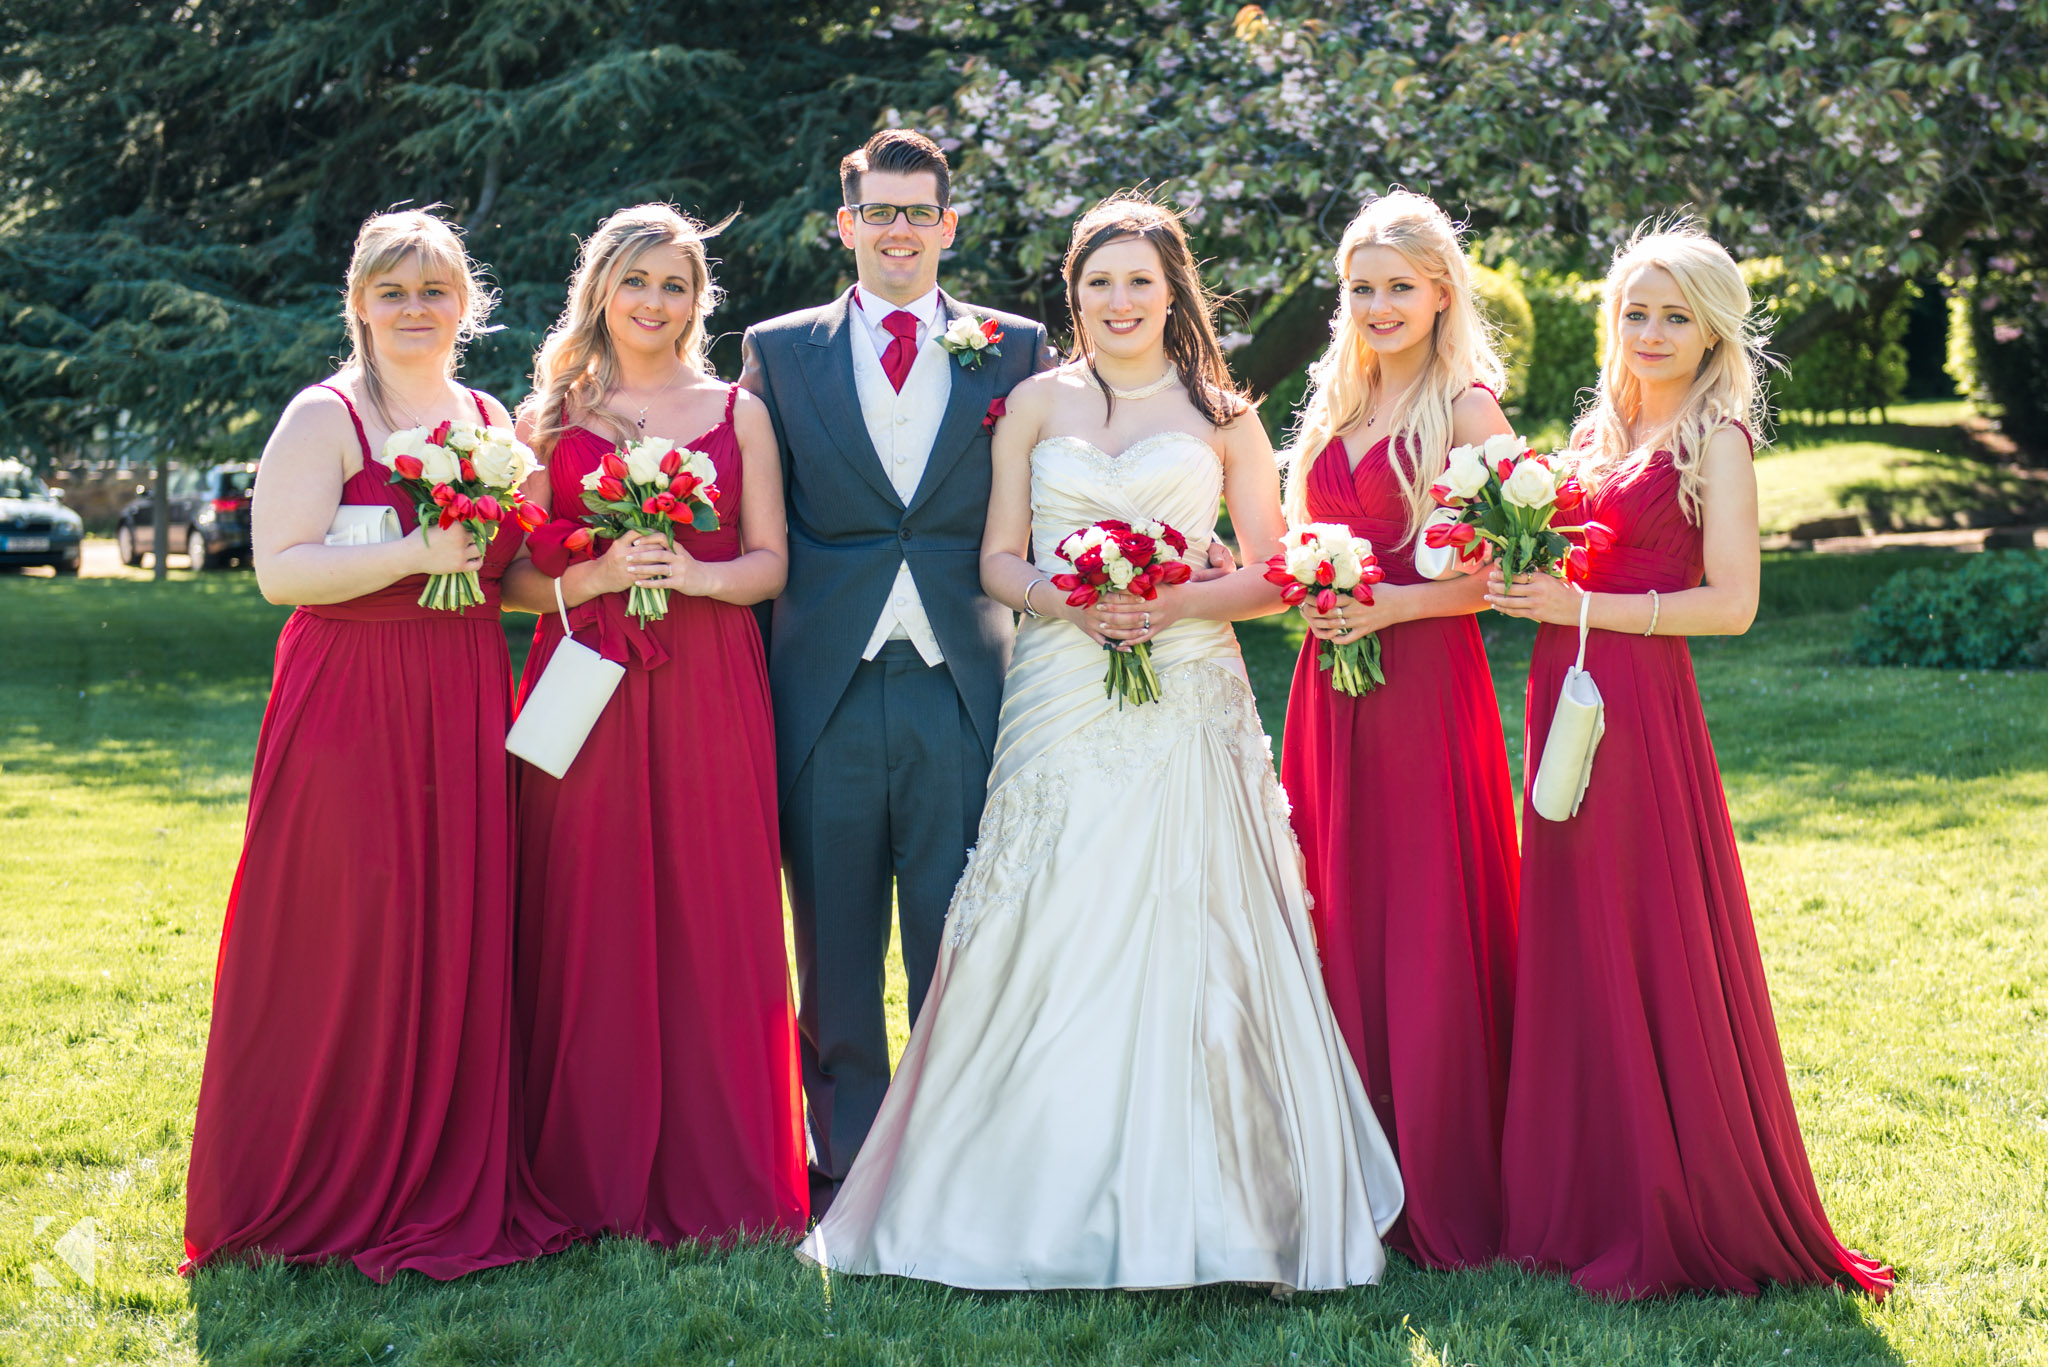 The Bride Groom And Bridesmaids